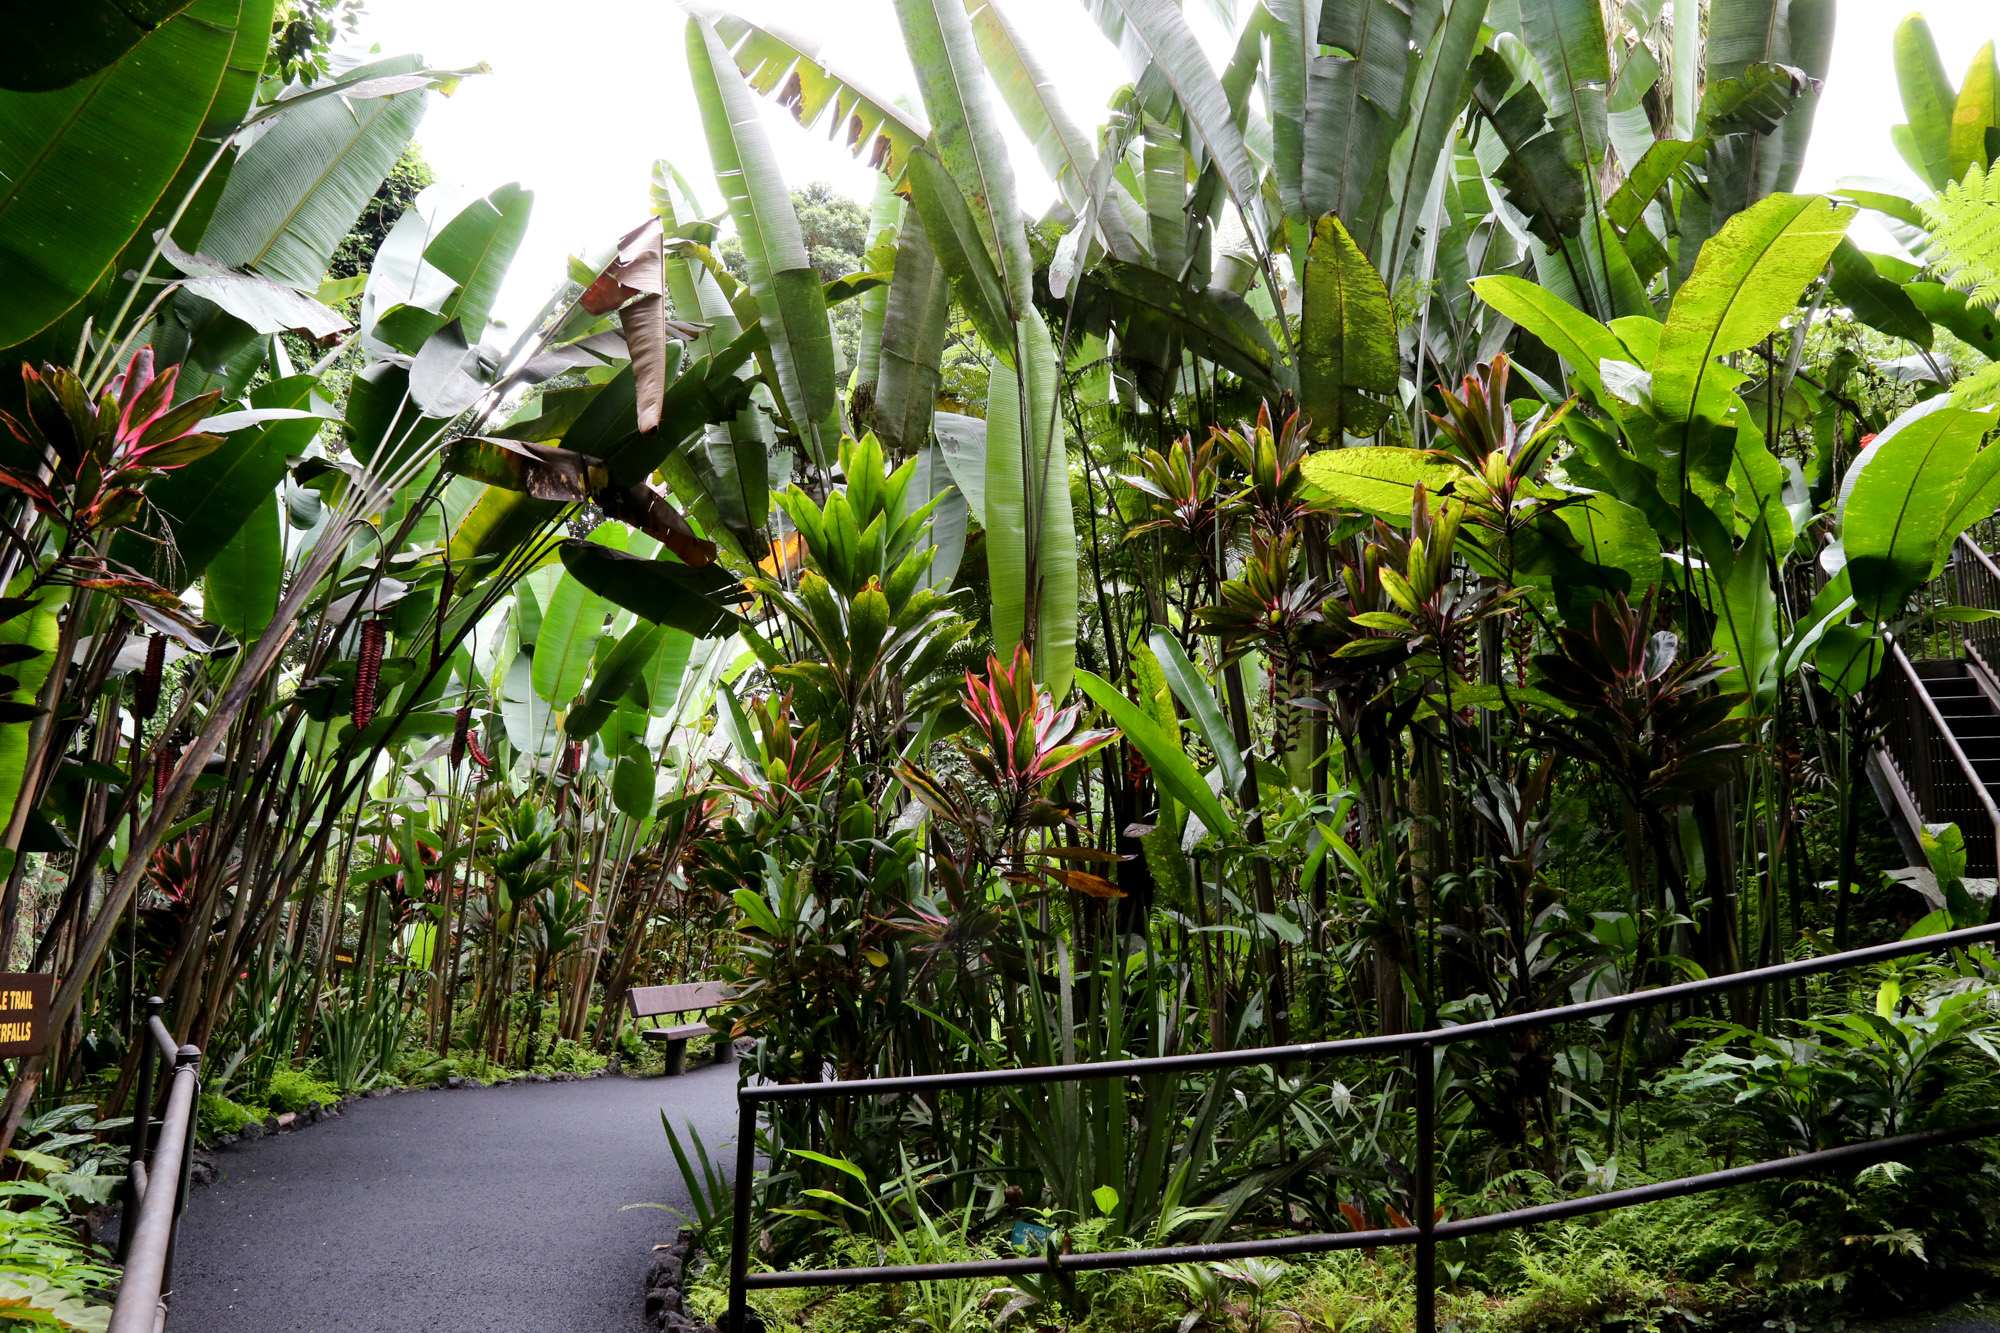 original_caughey-melissa-hawaii-garden-palm-forest